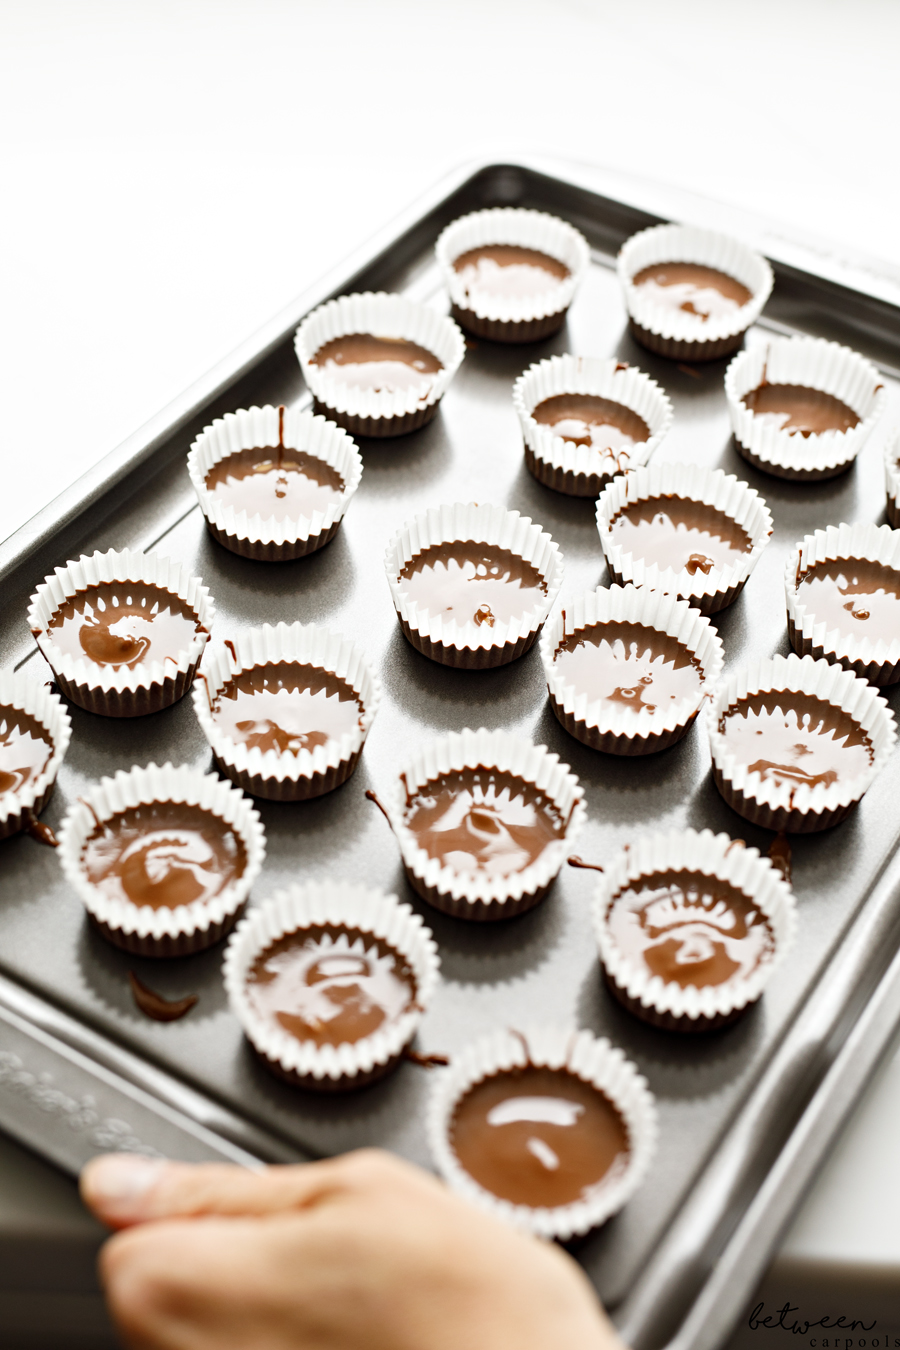 This is the Best Peanut Butter Cup Recipe on the Whole Internet. What's even more incredible is that these peanut butter cups are pareve (non-dairy; vegan).